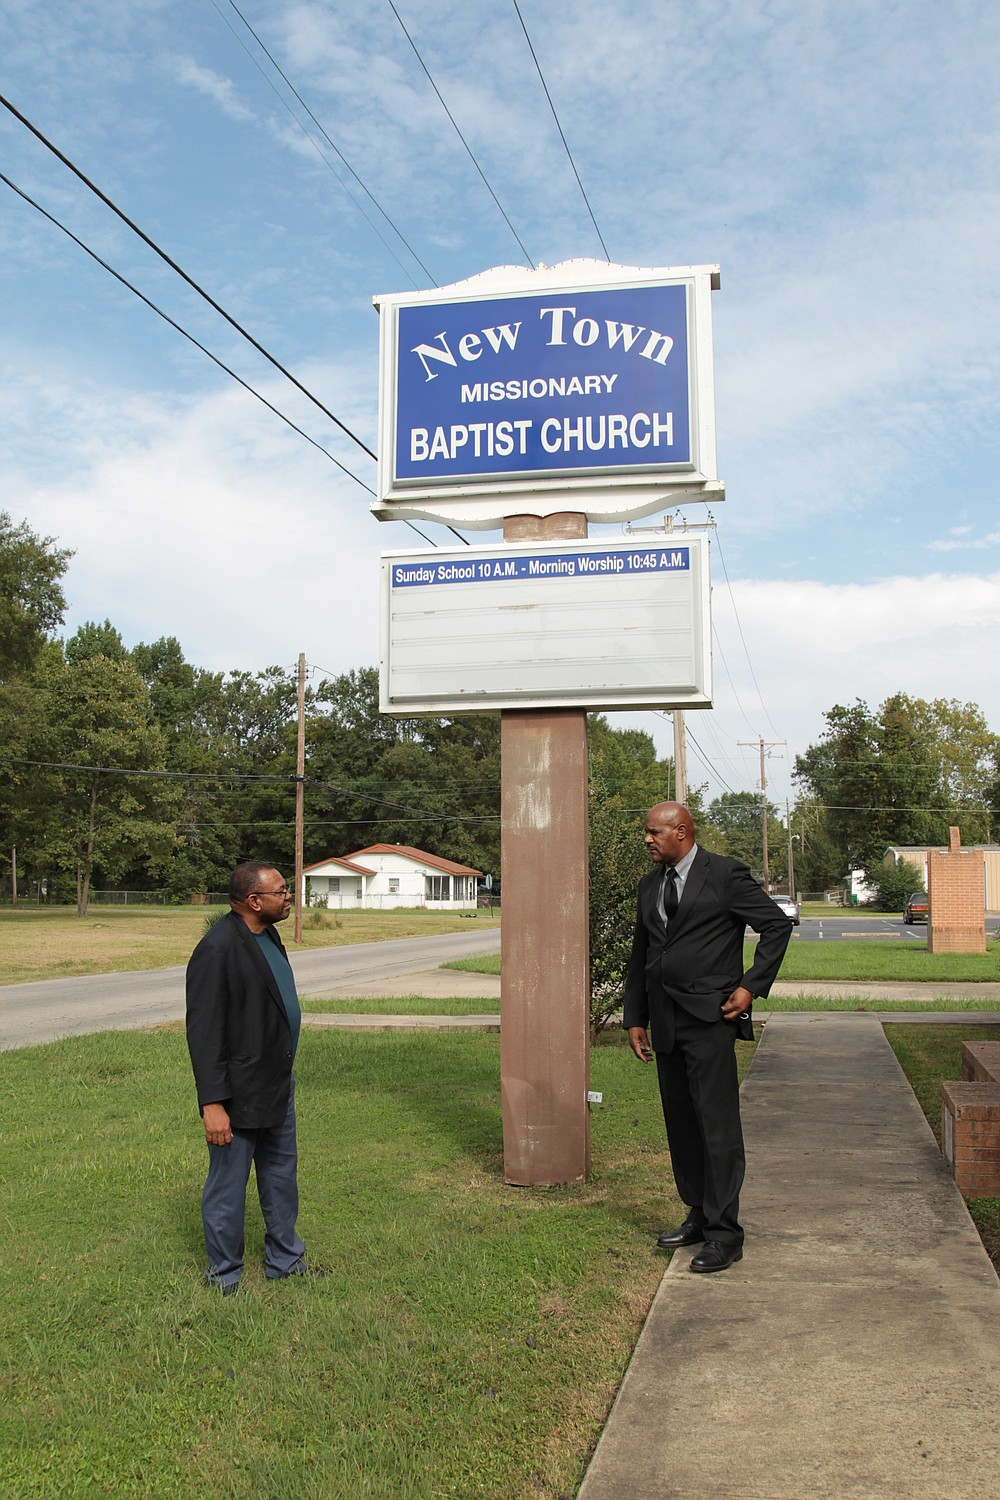 Ward Four aldermen Bruce Lockett, on left, and Steven Mays talk in front of New Town Missionary Baptist Church, which was discontinued as a polling site following a January decision by election commissioners Michael Adam and Stuart Soffer. Lockett and Mays, along with Ward Four resident Walter Johnson, have filed suit in Jefferson County Circuit Court seeking an injunction to allow the site to be used in the upcoming November 3 General Election. (Pine Bluff Commercial/Dale Ellis)